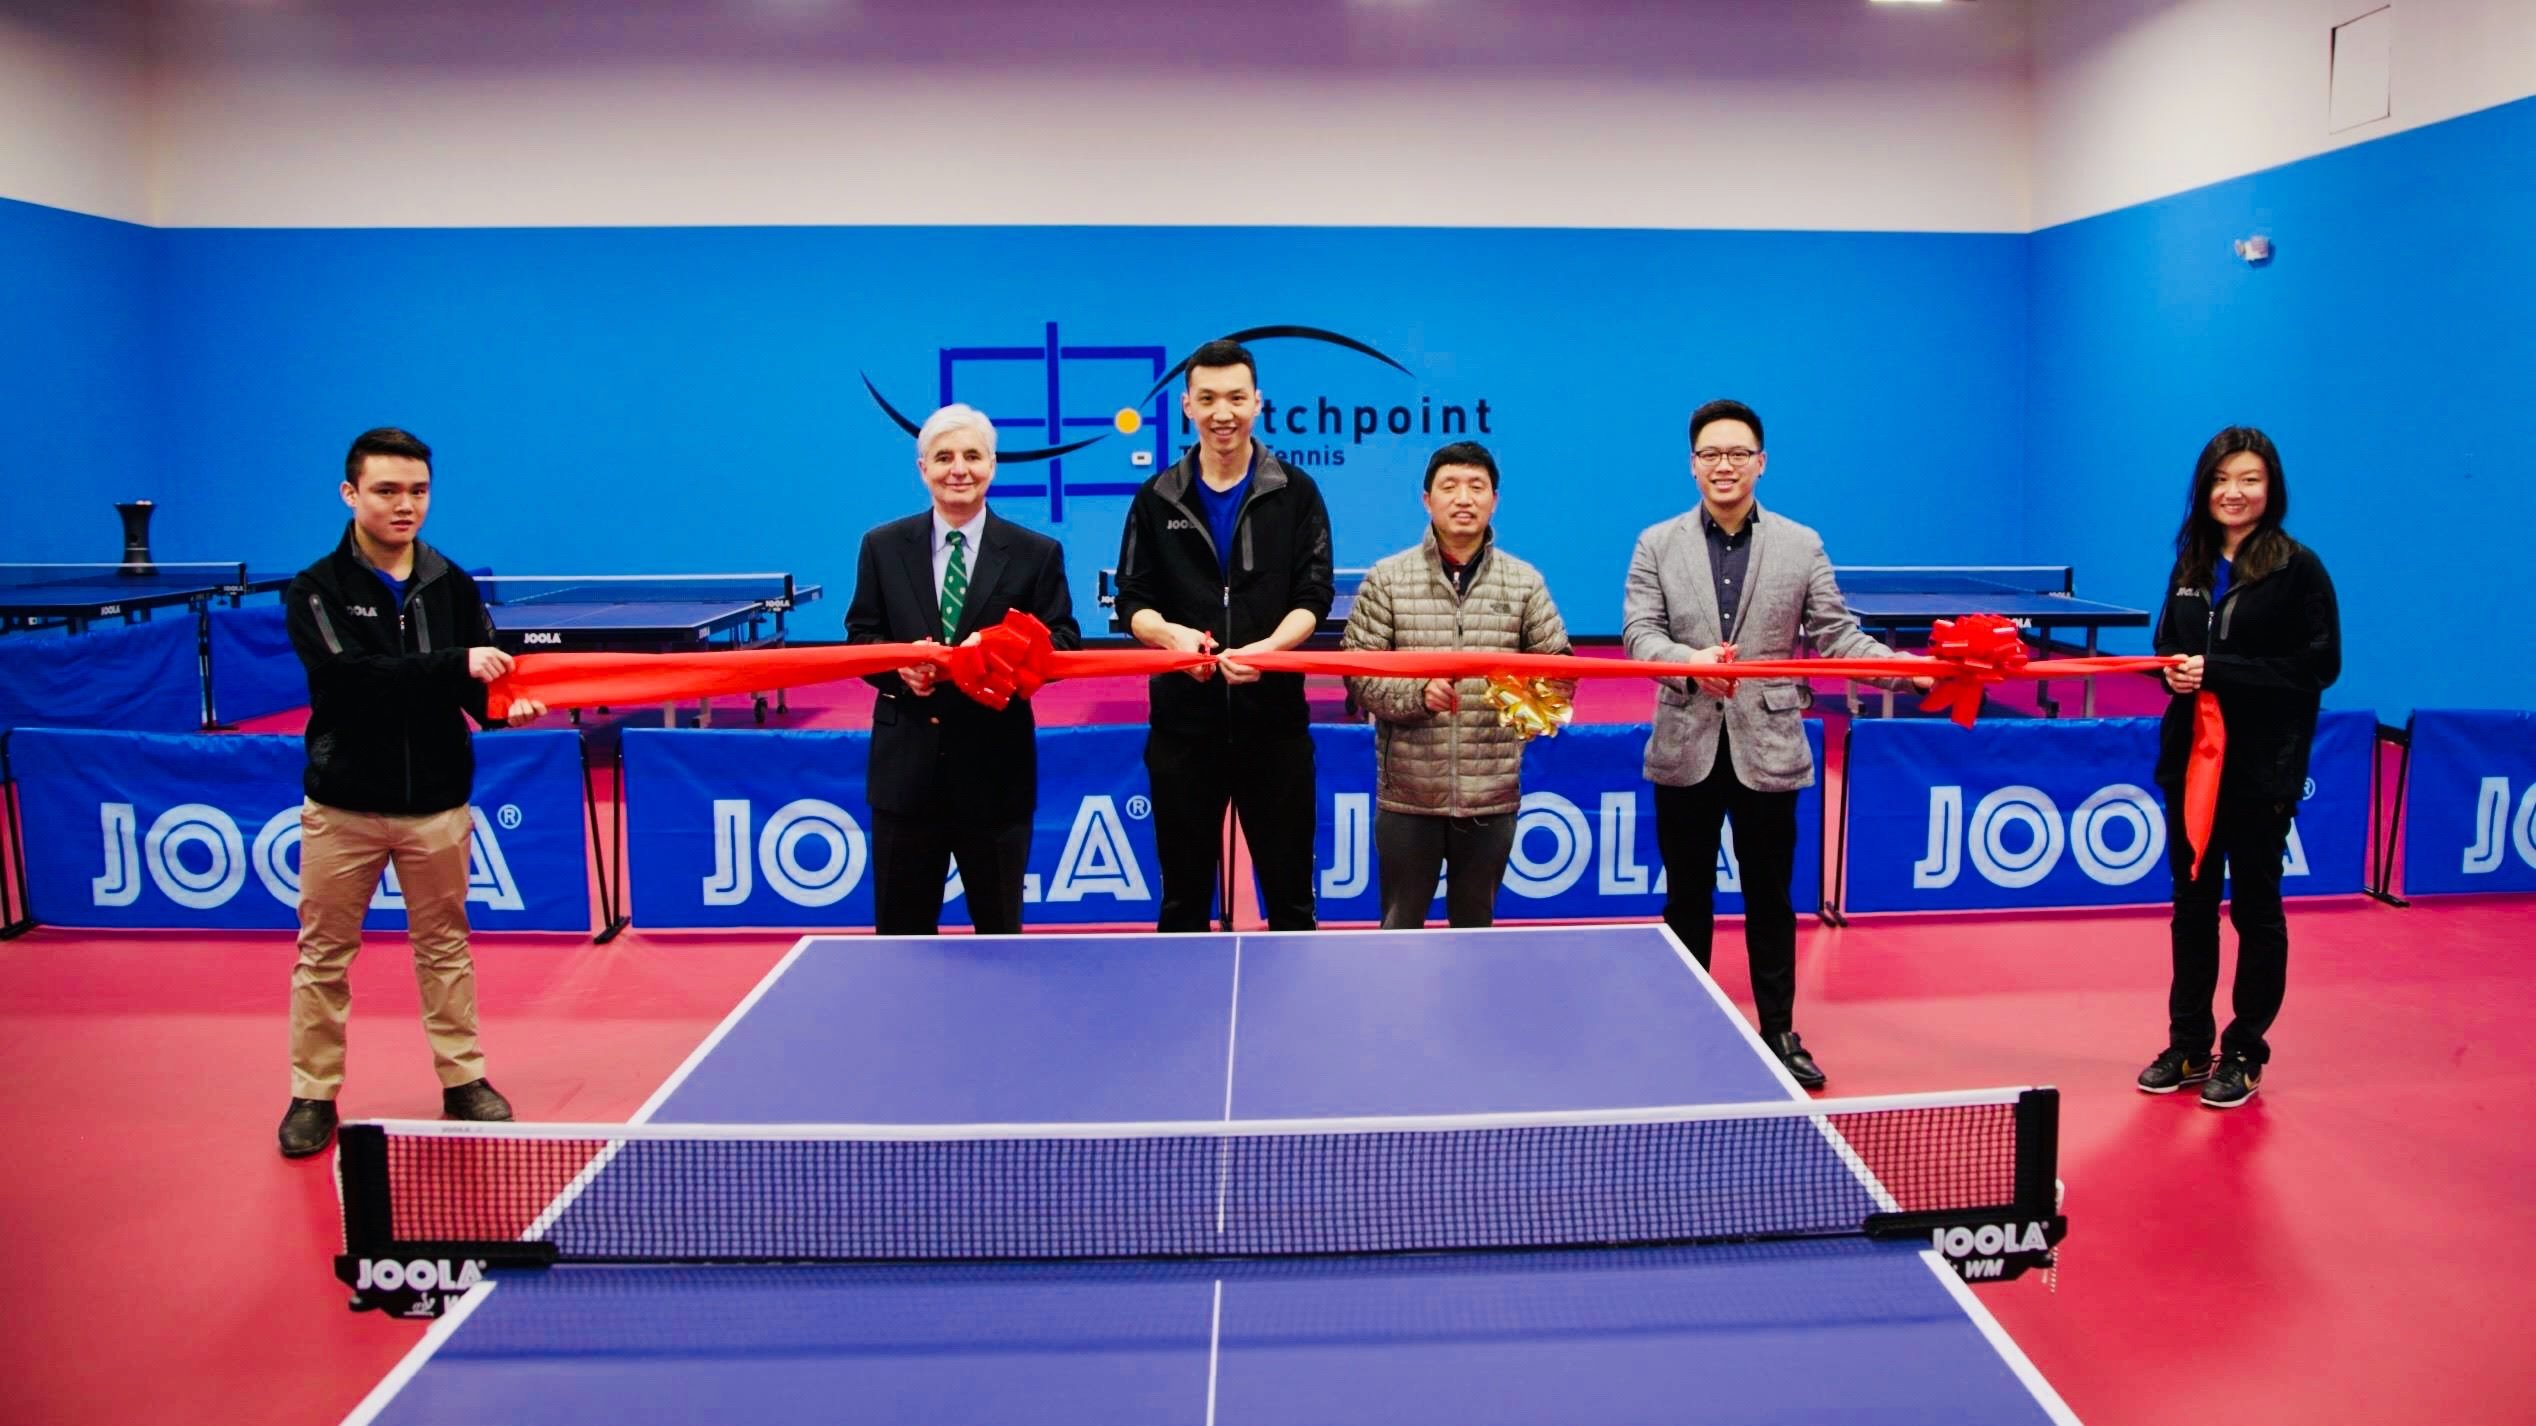 Matchpoint Table Tennis Center, owned by JOOLA- sponsored coach, Li Bochao, has successful grand opening